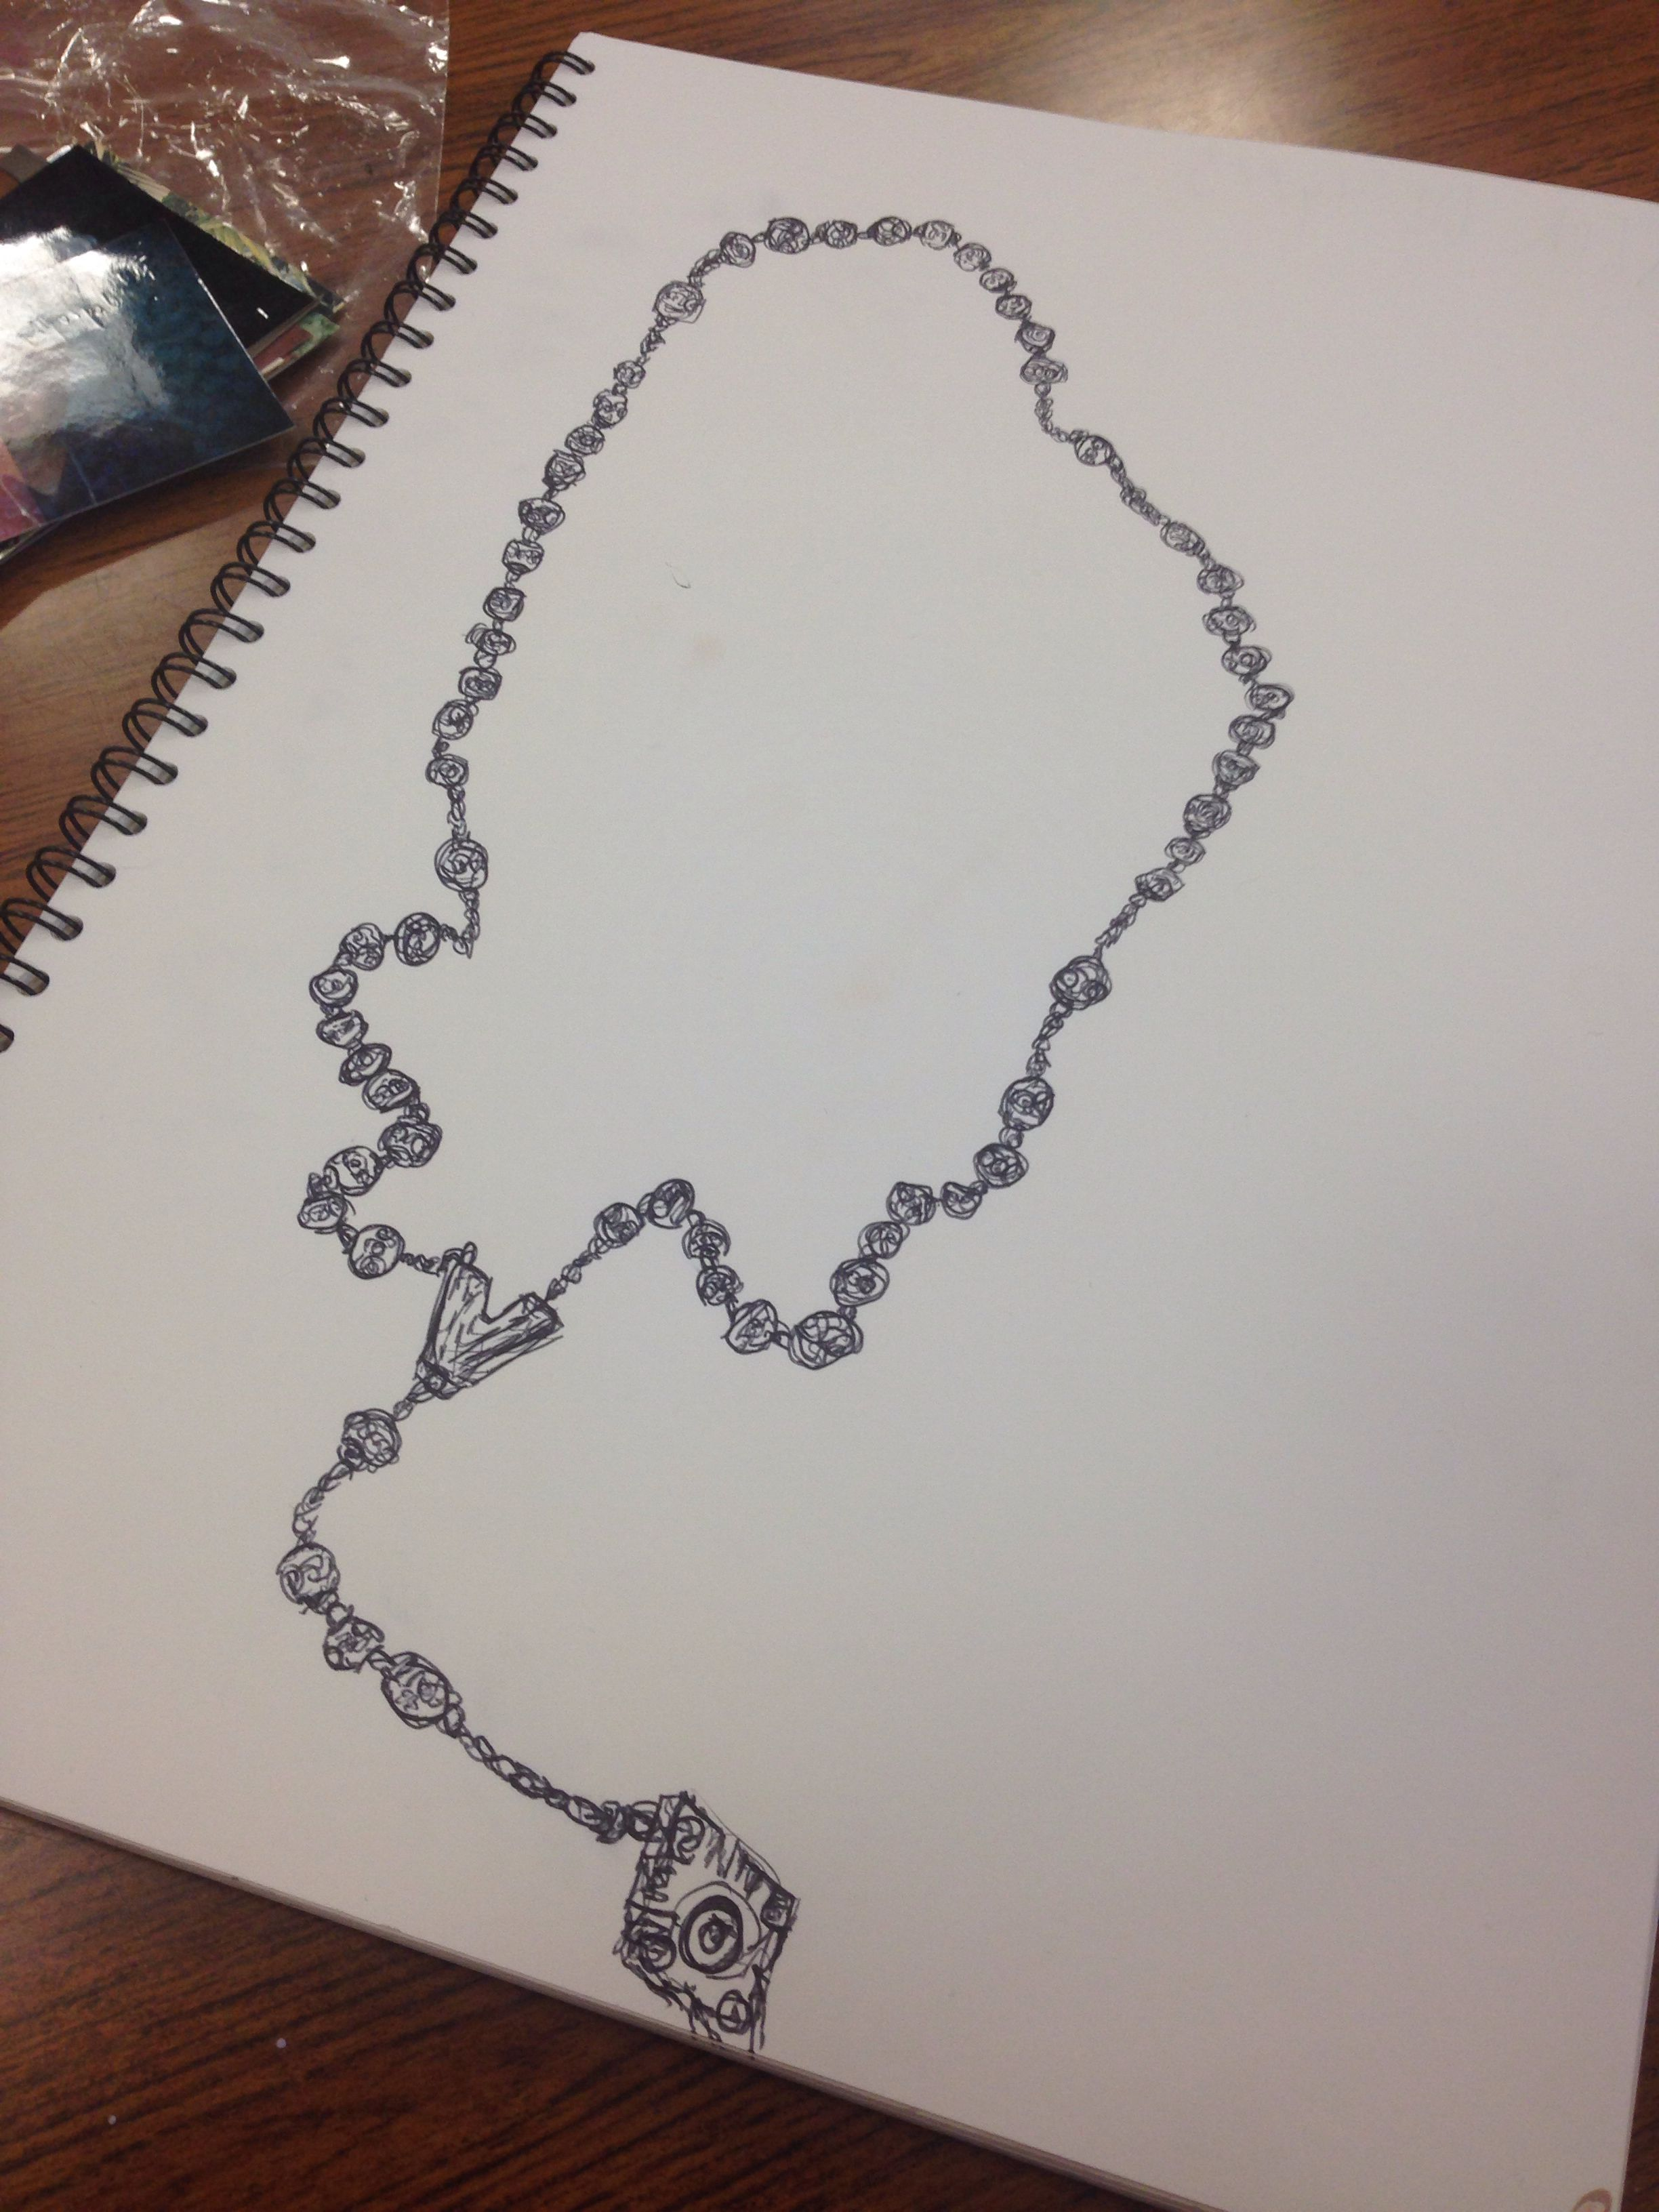 2448x3264 Rosary Bead Drawing I Did My Art Work Rosary Beads